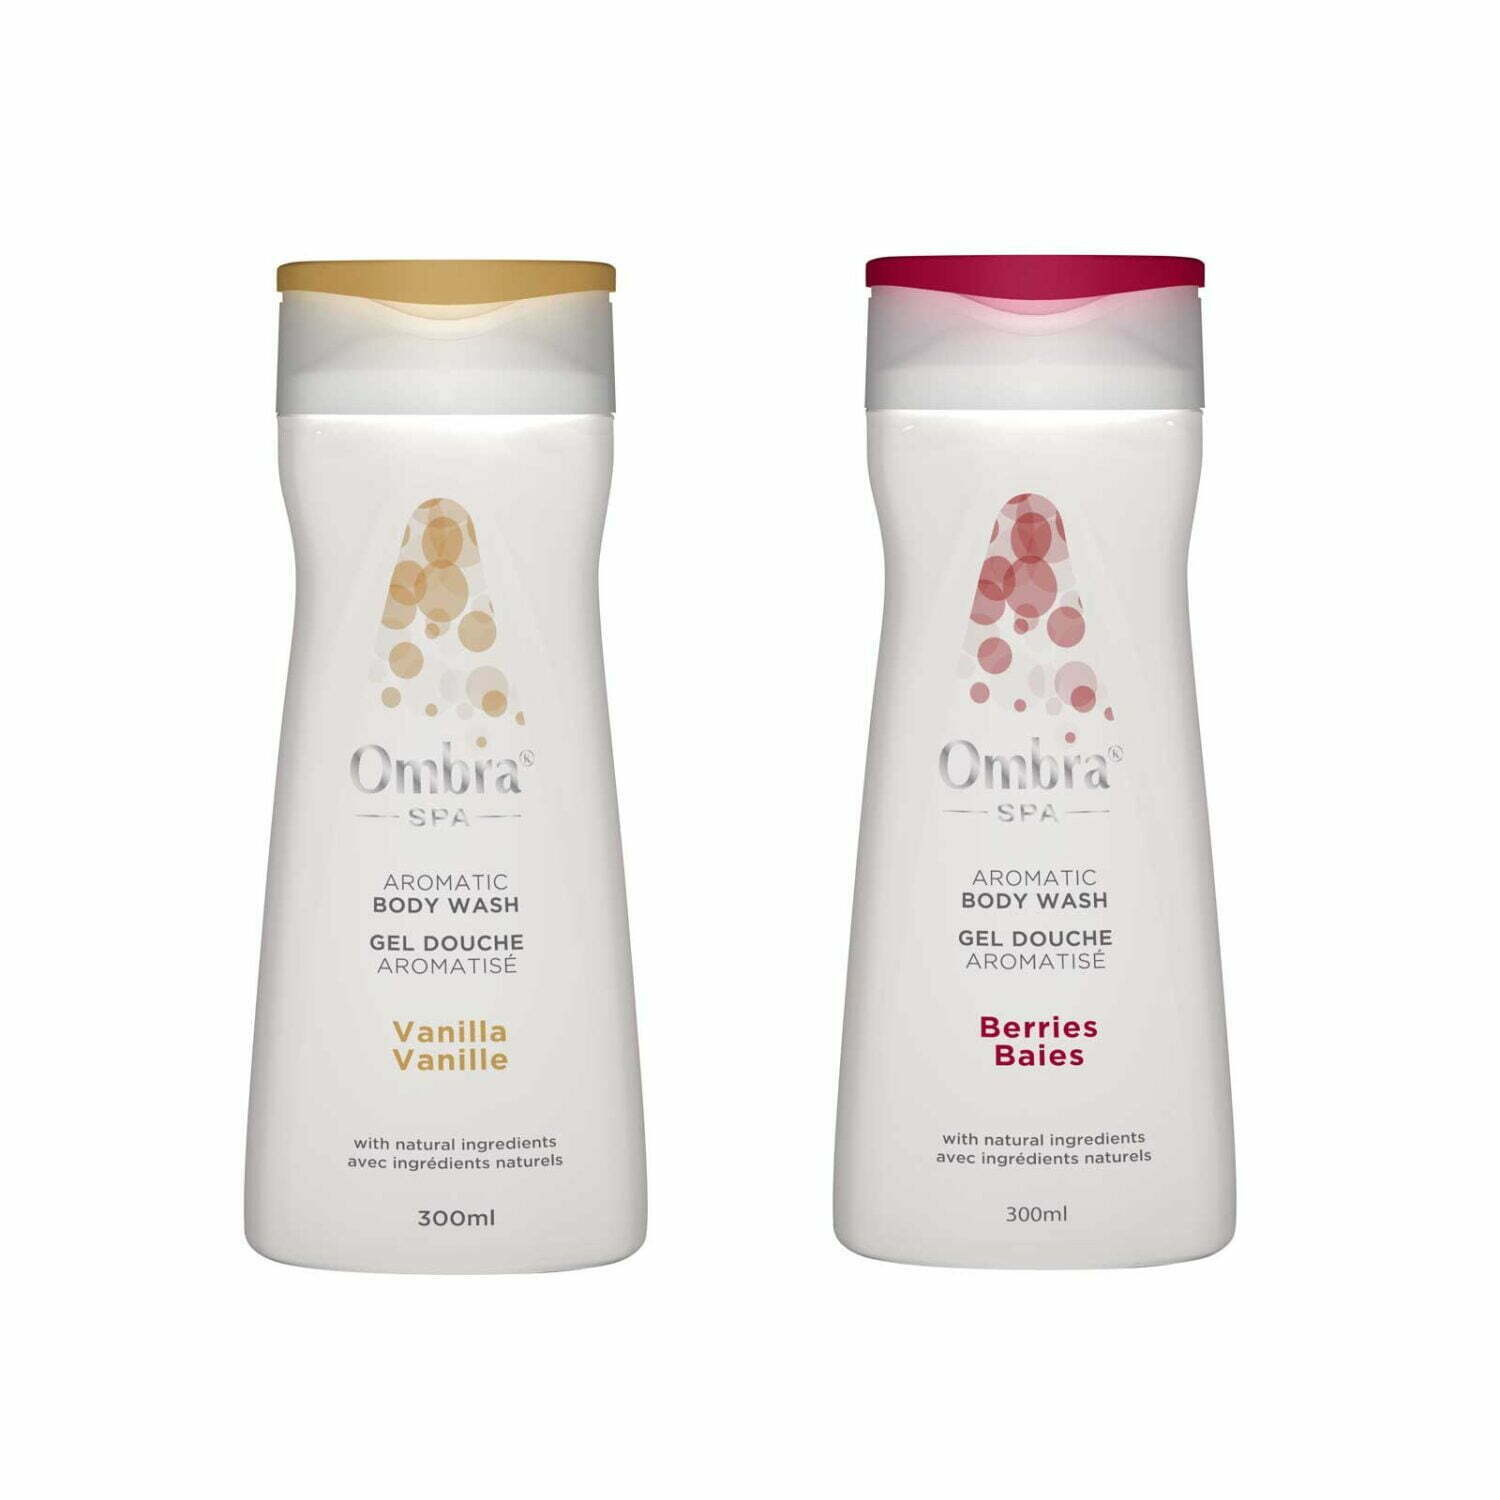 Ombra body wash 300ml